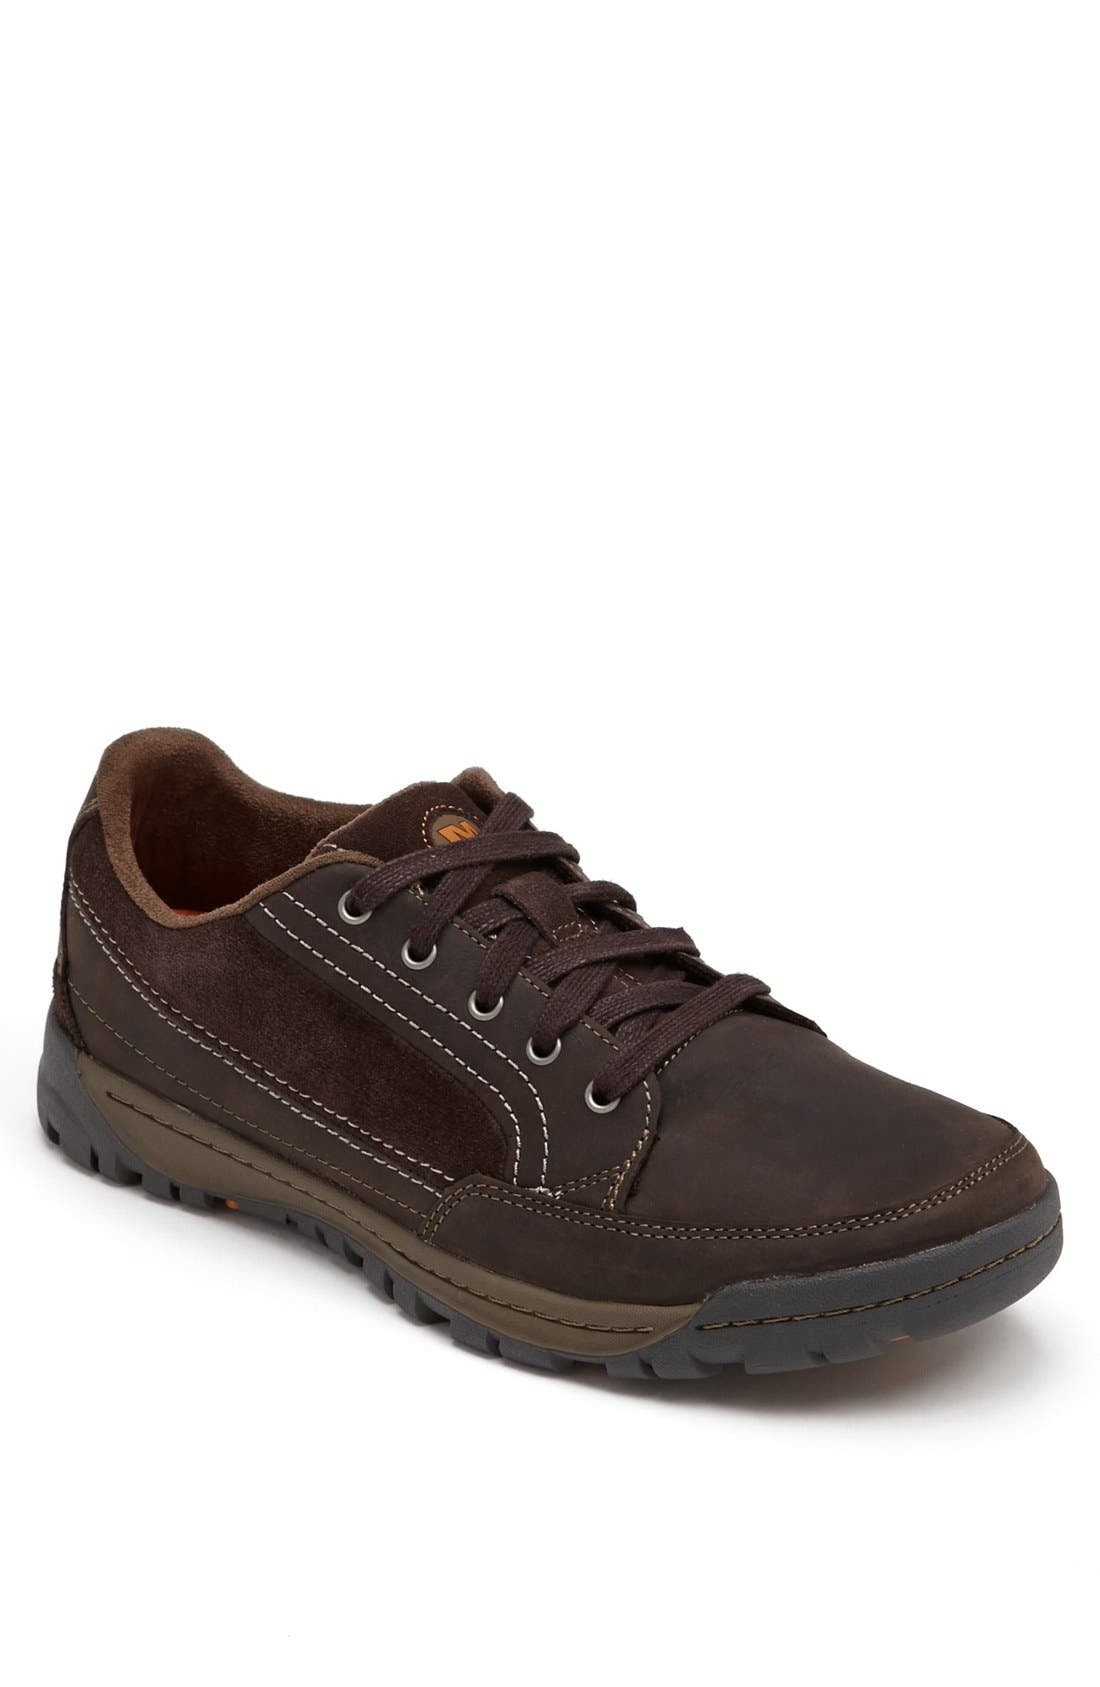 Main Image - Merrell 'Traveler Sphere' Sneaker (Men)